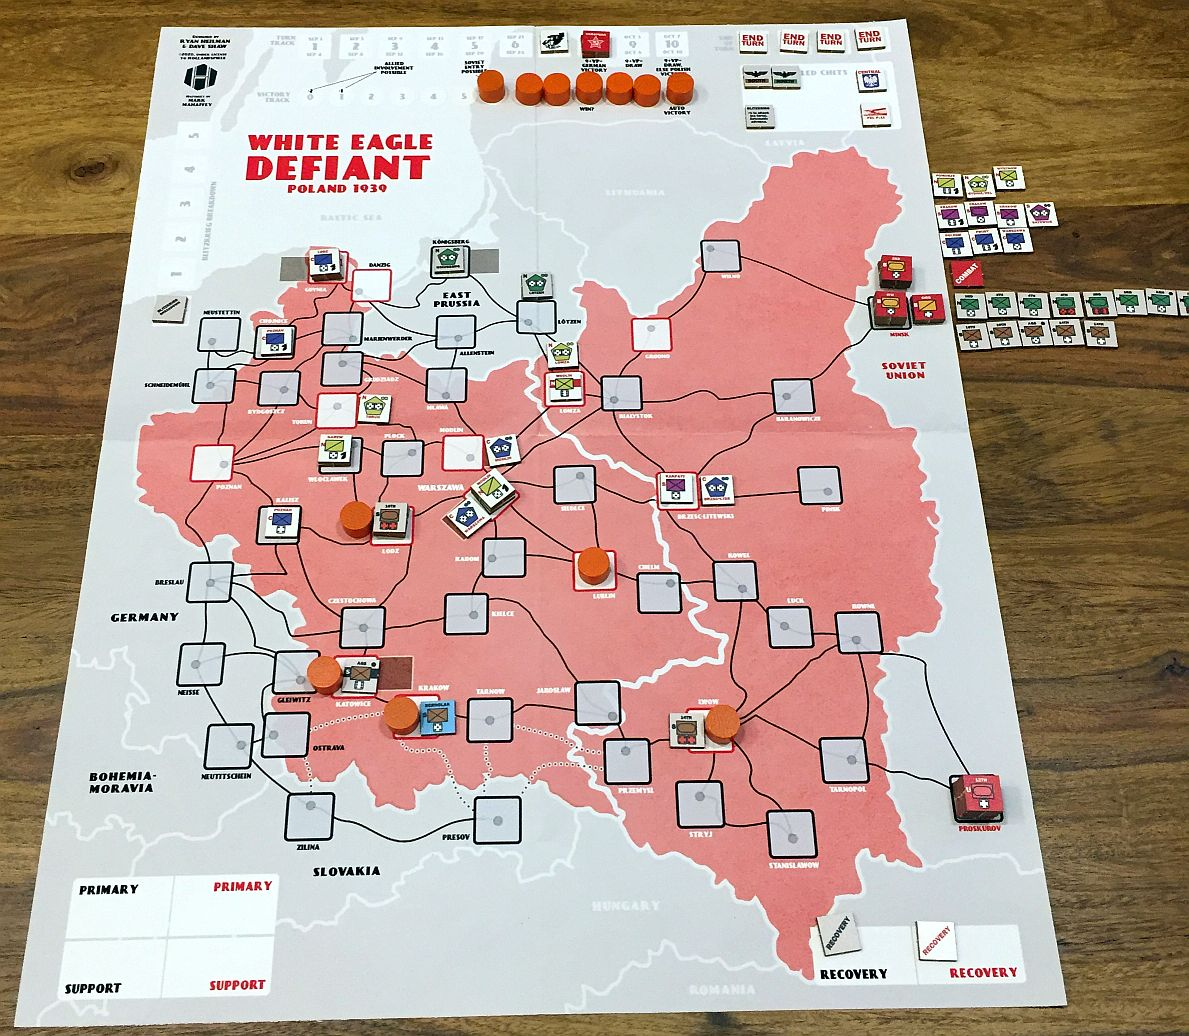 After TURN 6&7; VPs at 5. The North of Poland is free again! But German forces are converging on Warsaw. One more point for Soviet entry...